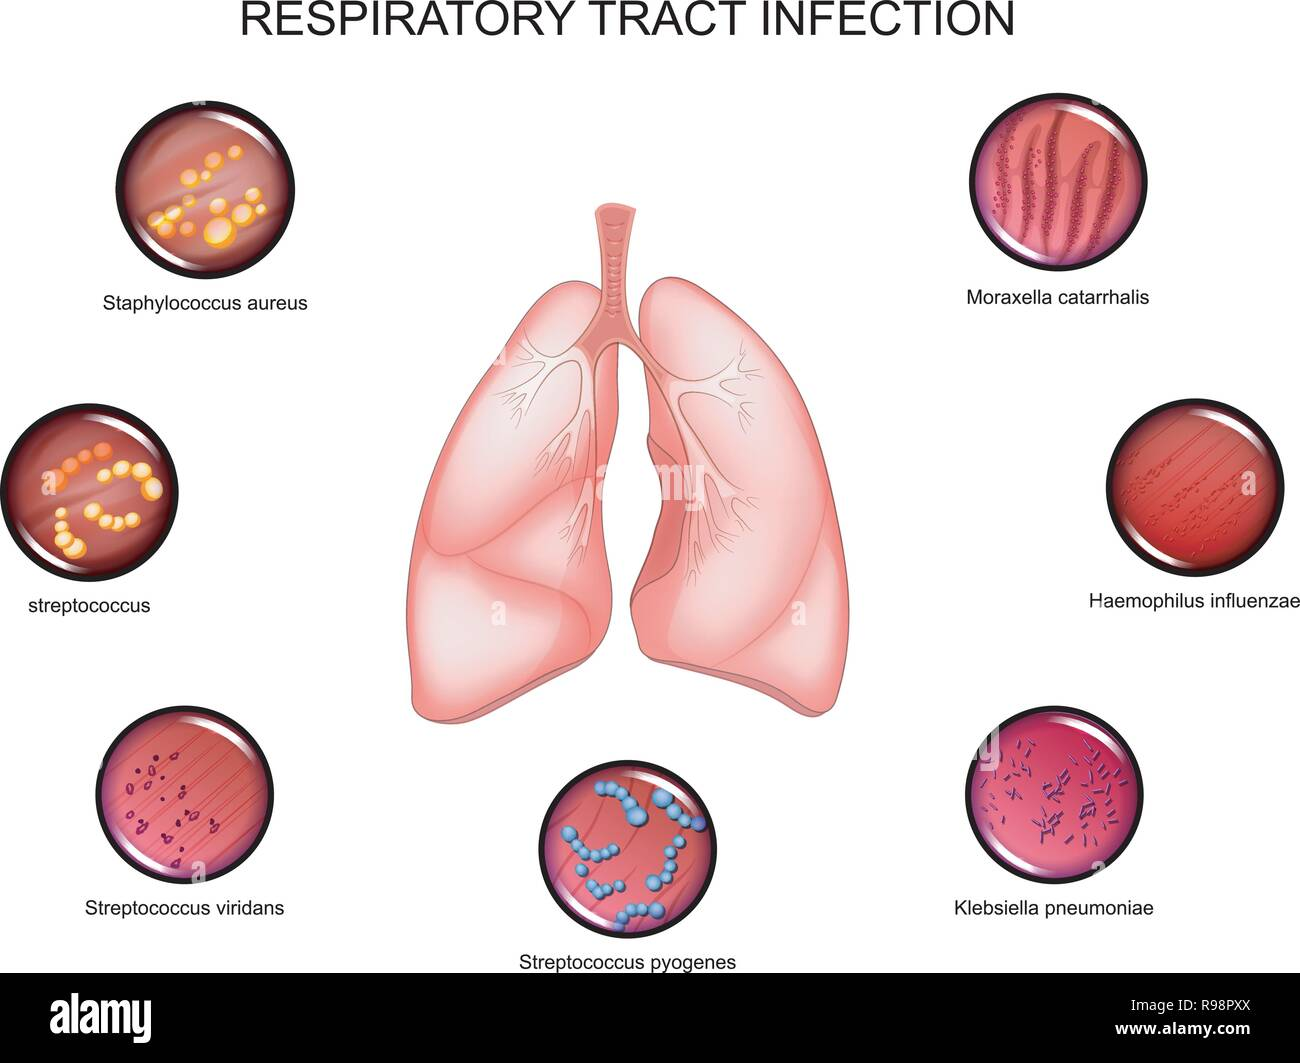 vector illustration of lungs and respiratory tract infections - Stock Vector